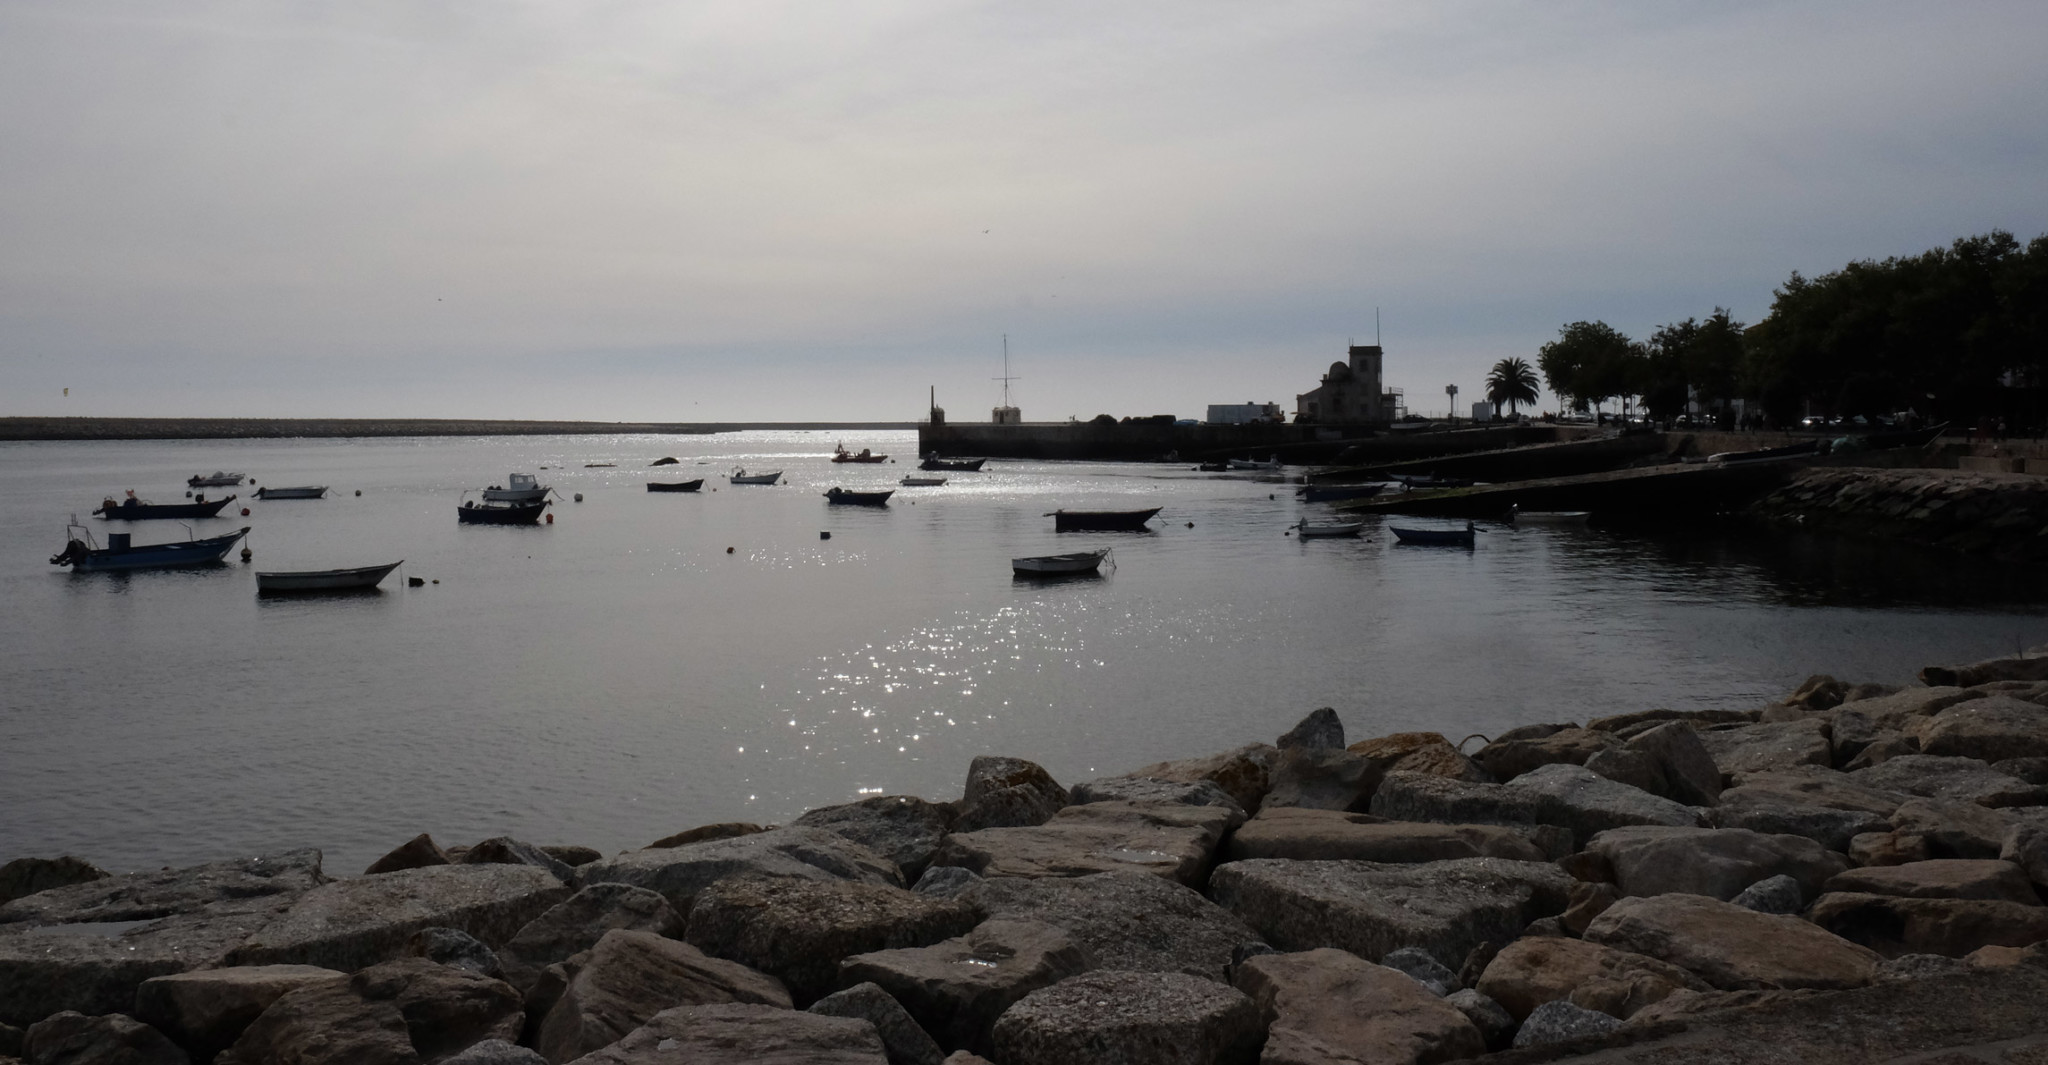 Boats in the estuary at Foz